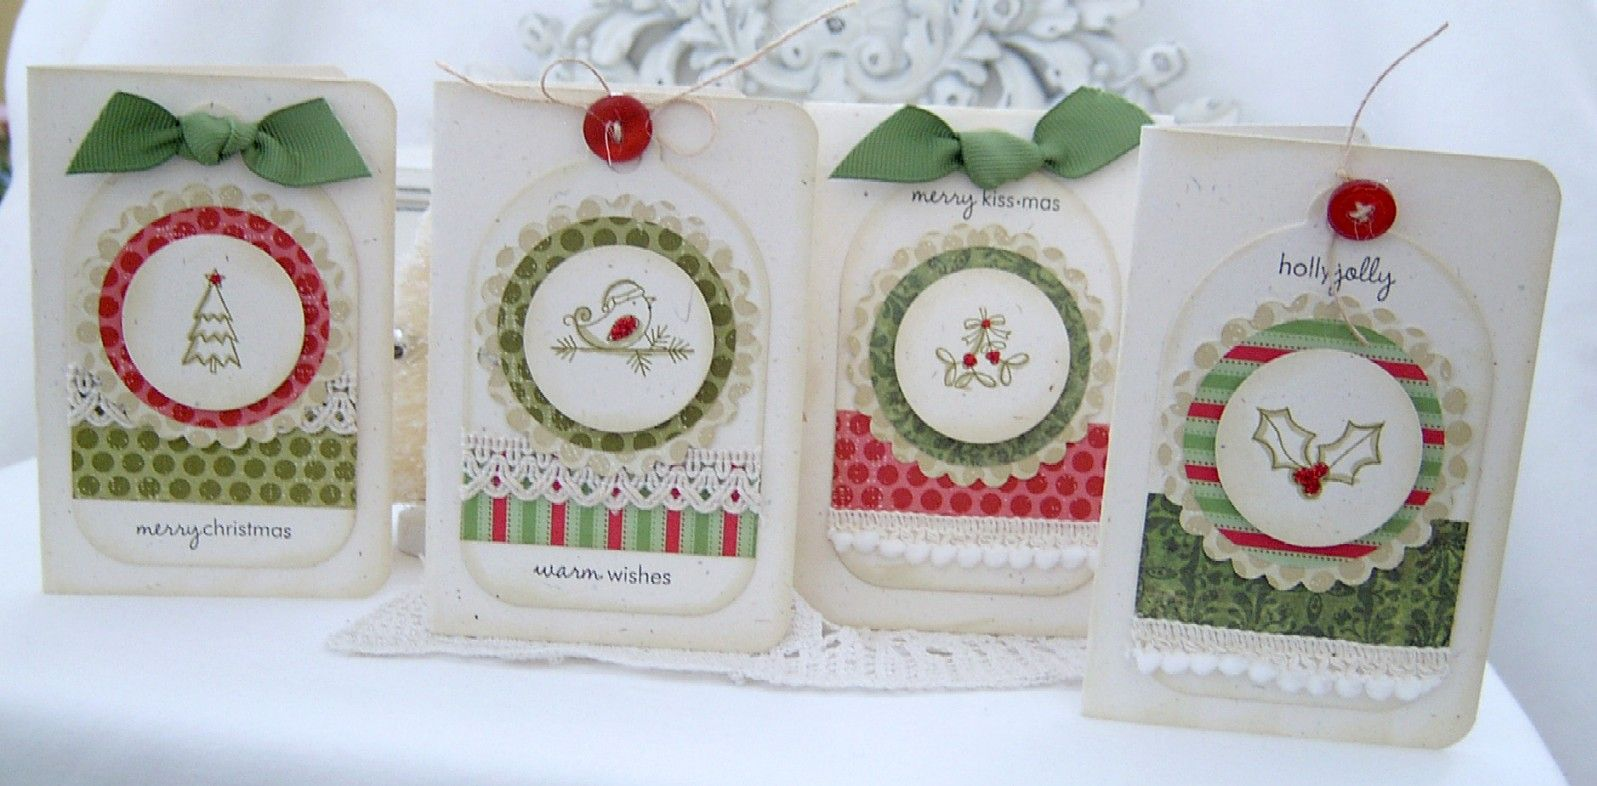 Christmas cards, made by Melissa phillips